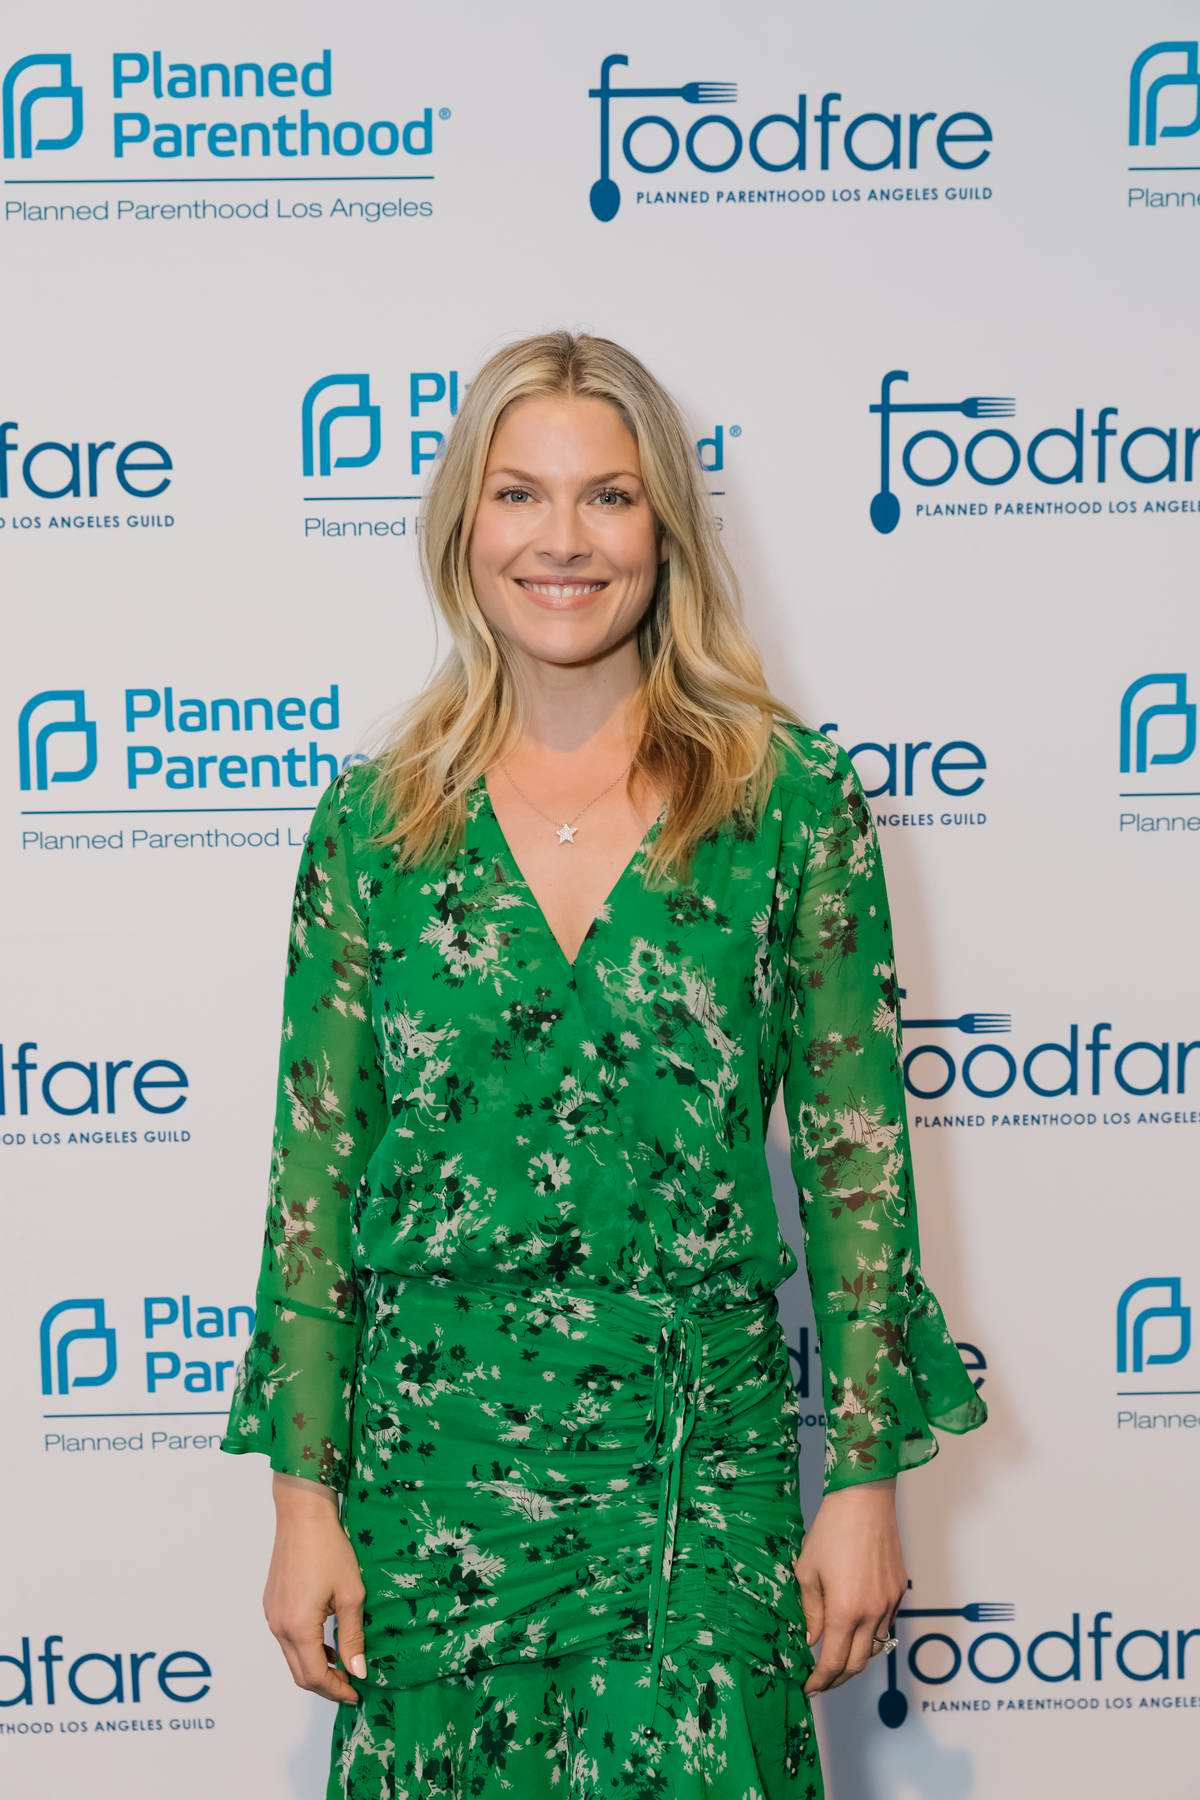 Ali Larter attends the Planned Parenthood Los Angeles (PPLA) Fundraiser and Food Fare at the Barker Hangar in Santa Monica, California